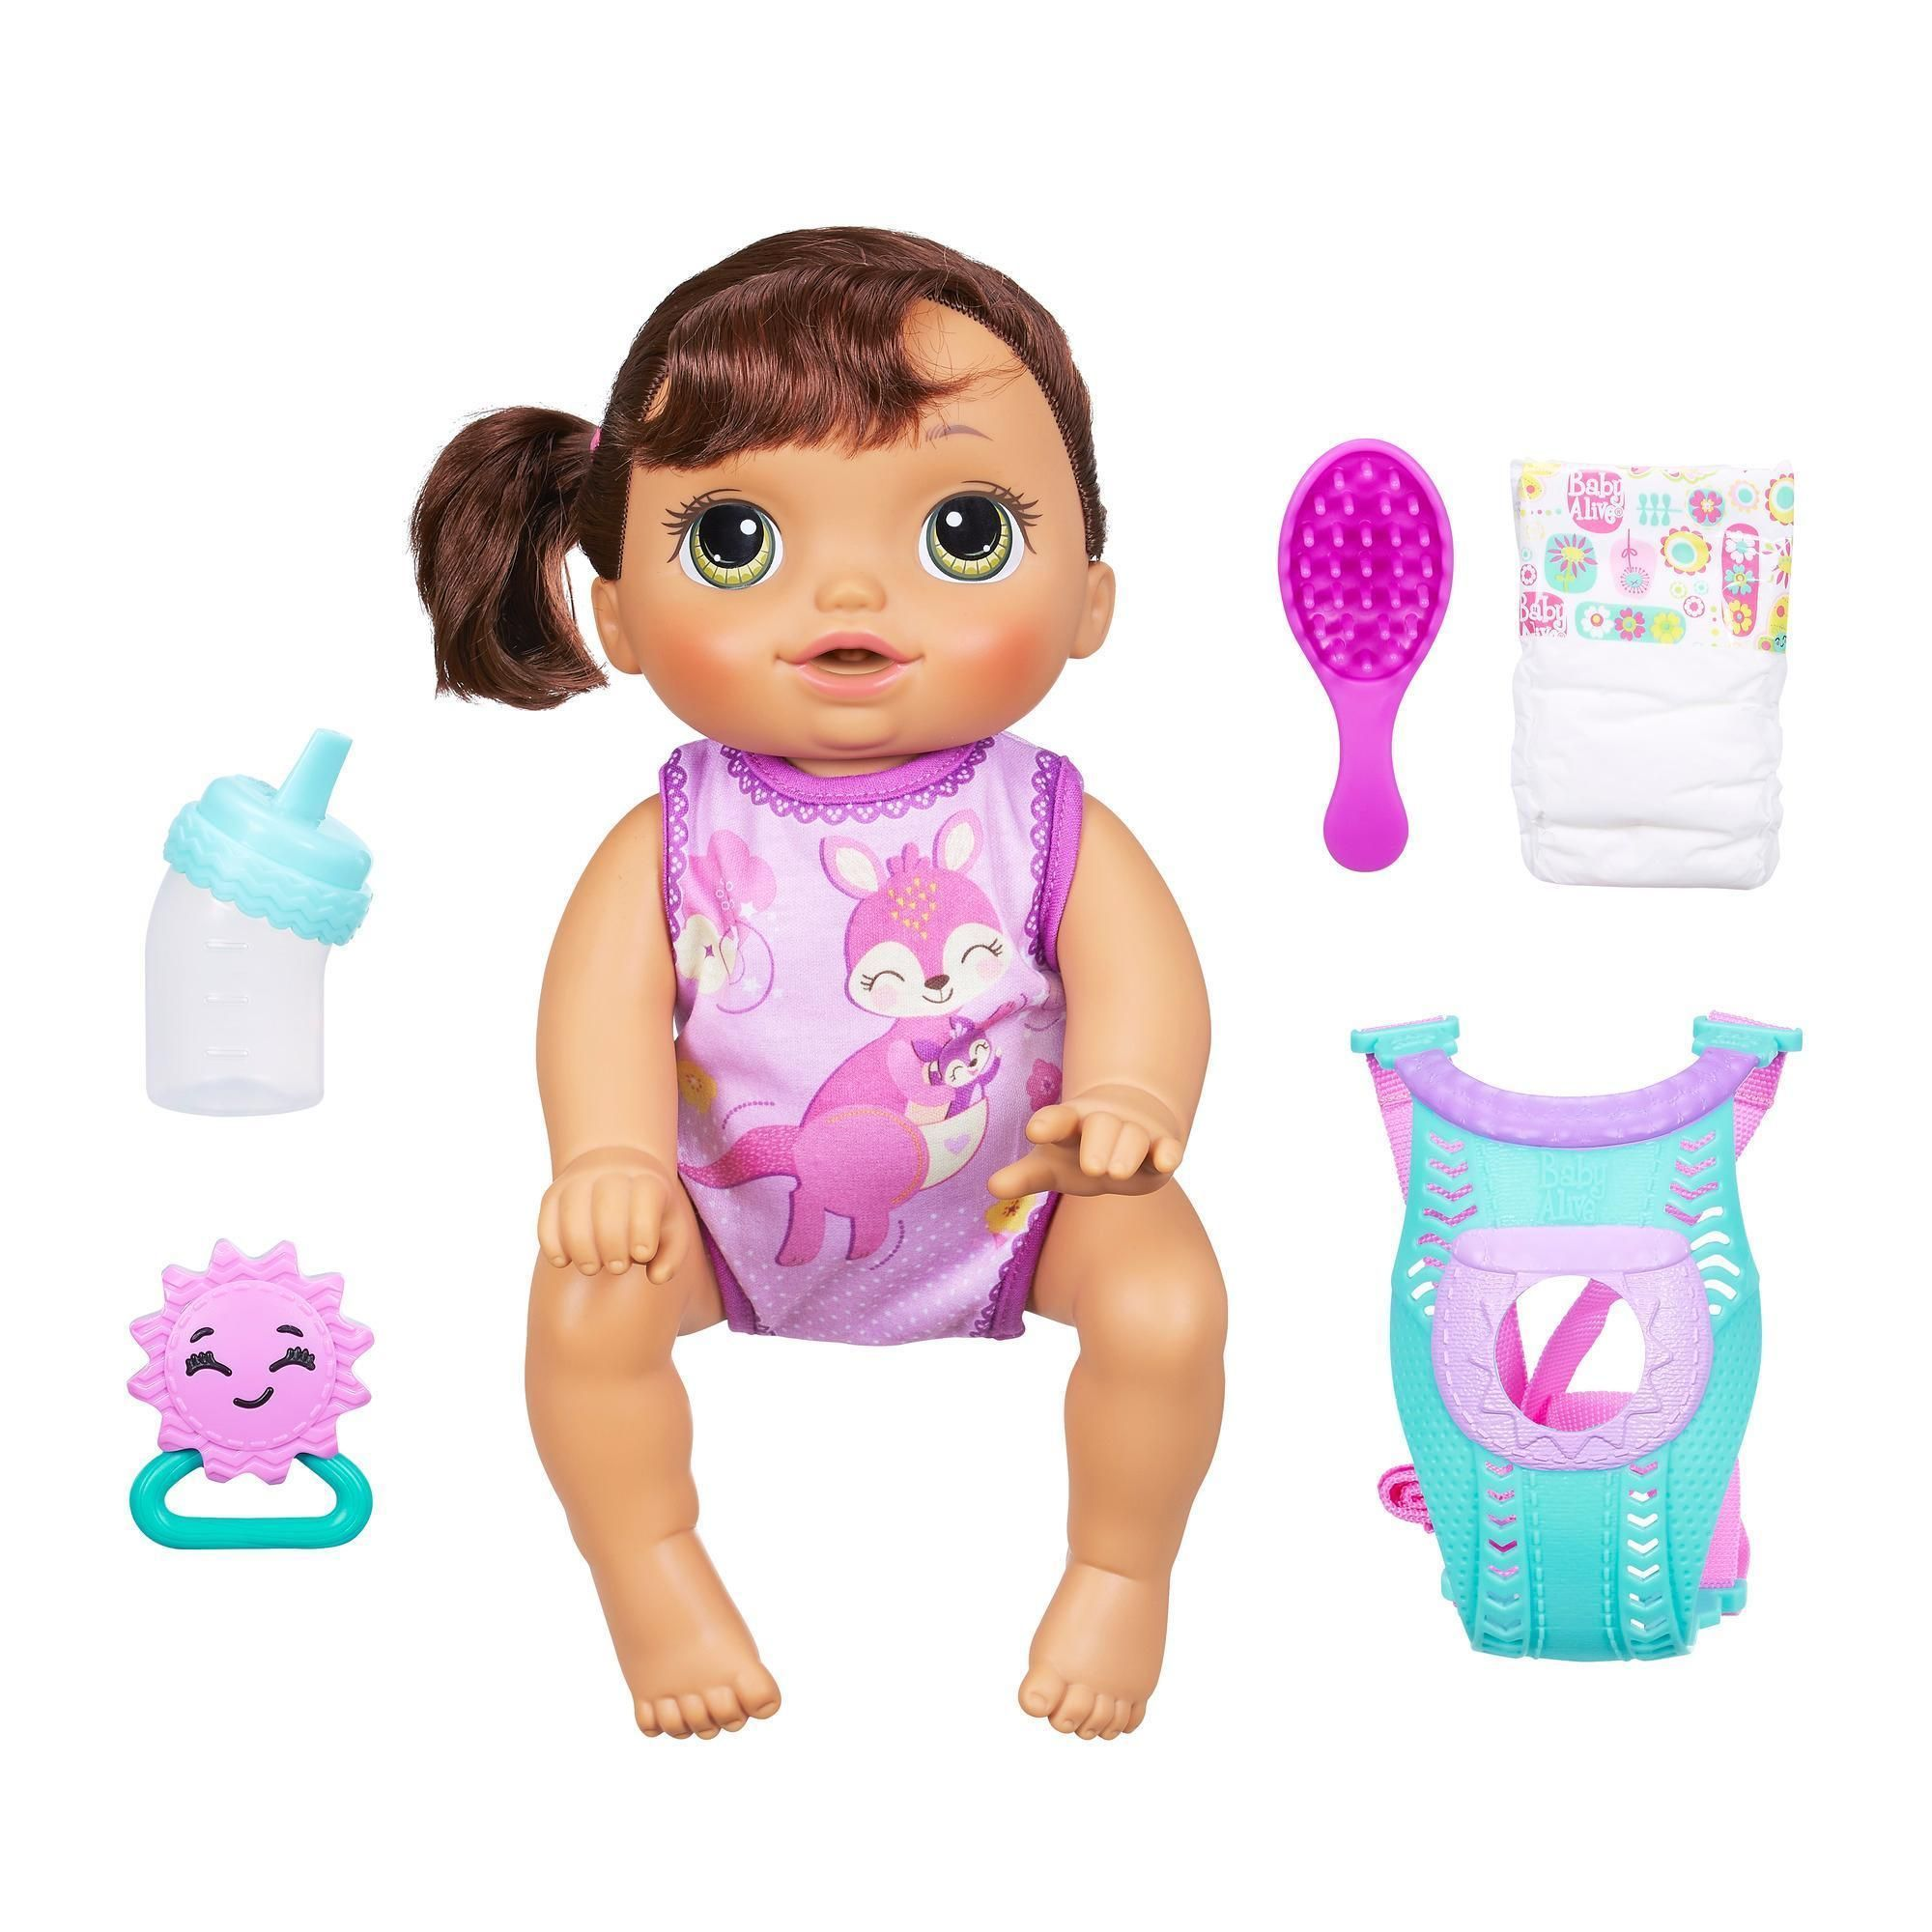 Overstock Com Online Shopping Bedding Furniture Electronics Jewelry Clothing More Baby Alive Baby Alive Dolls Baby Doll Nursery